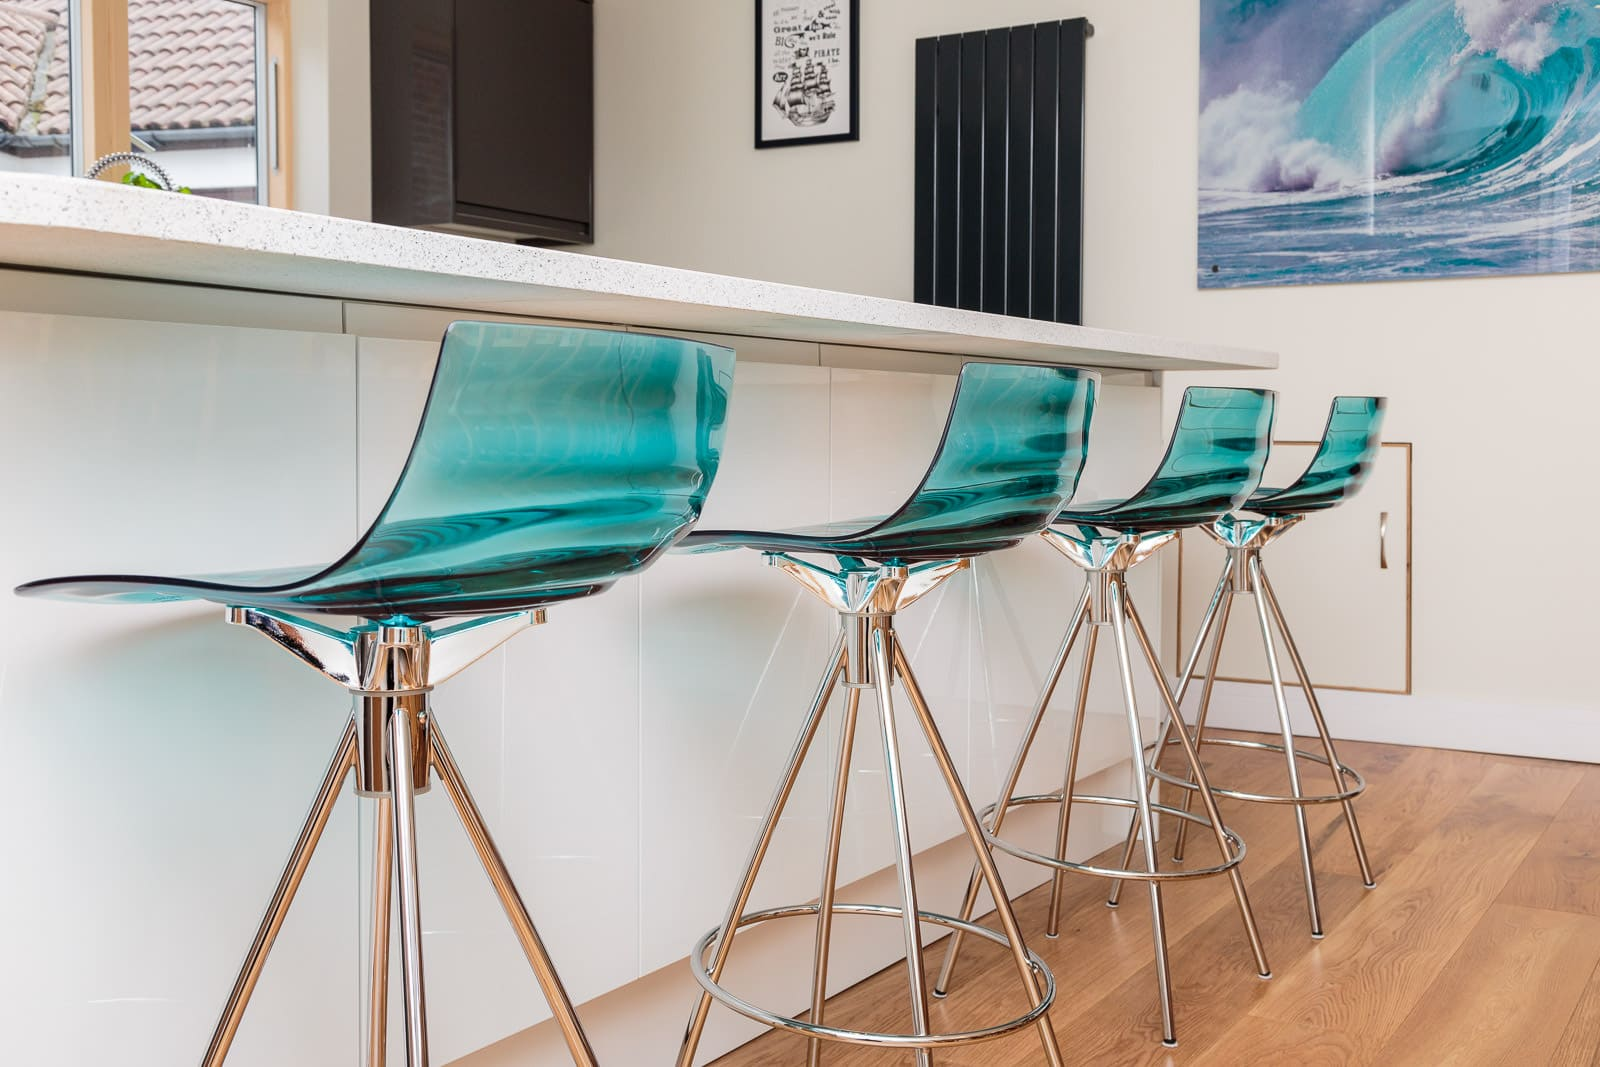 aqua glass seating with crome legs in modern kitchen against a breakfast bar